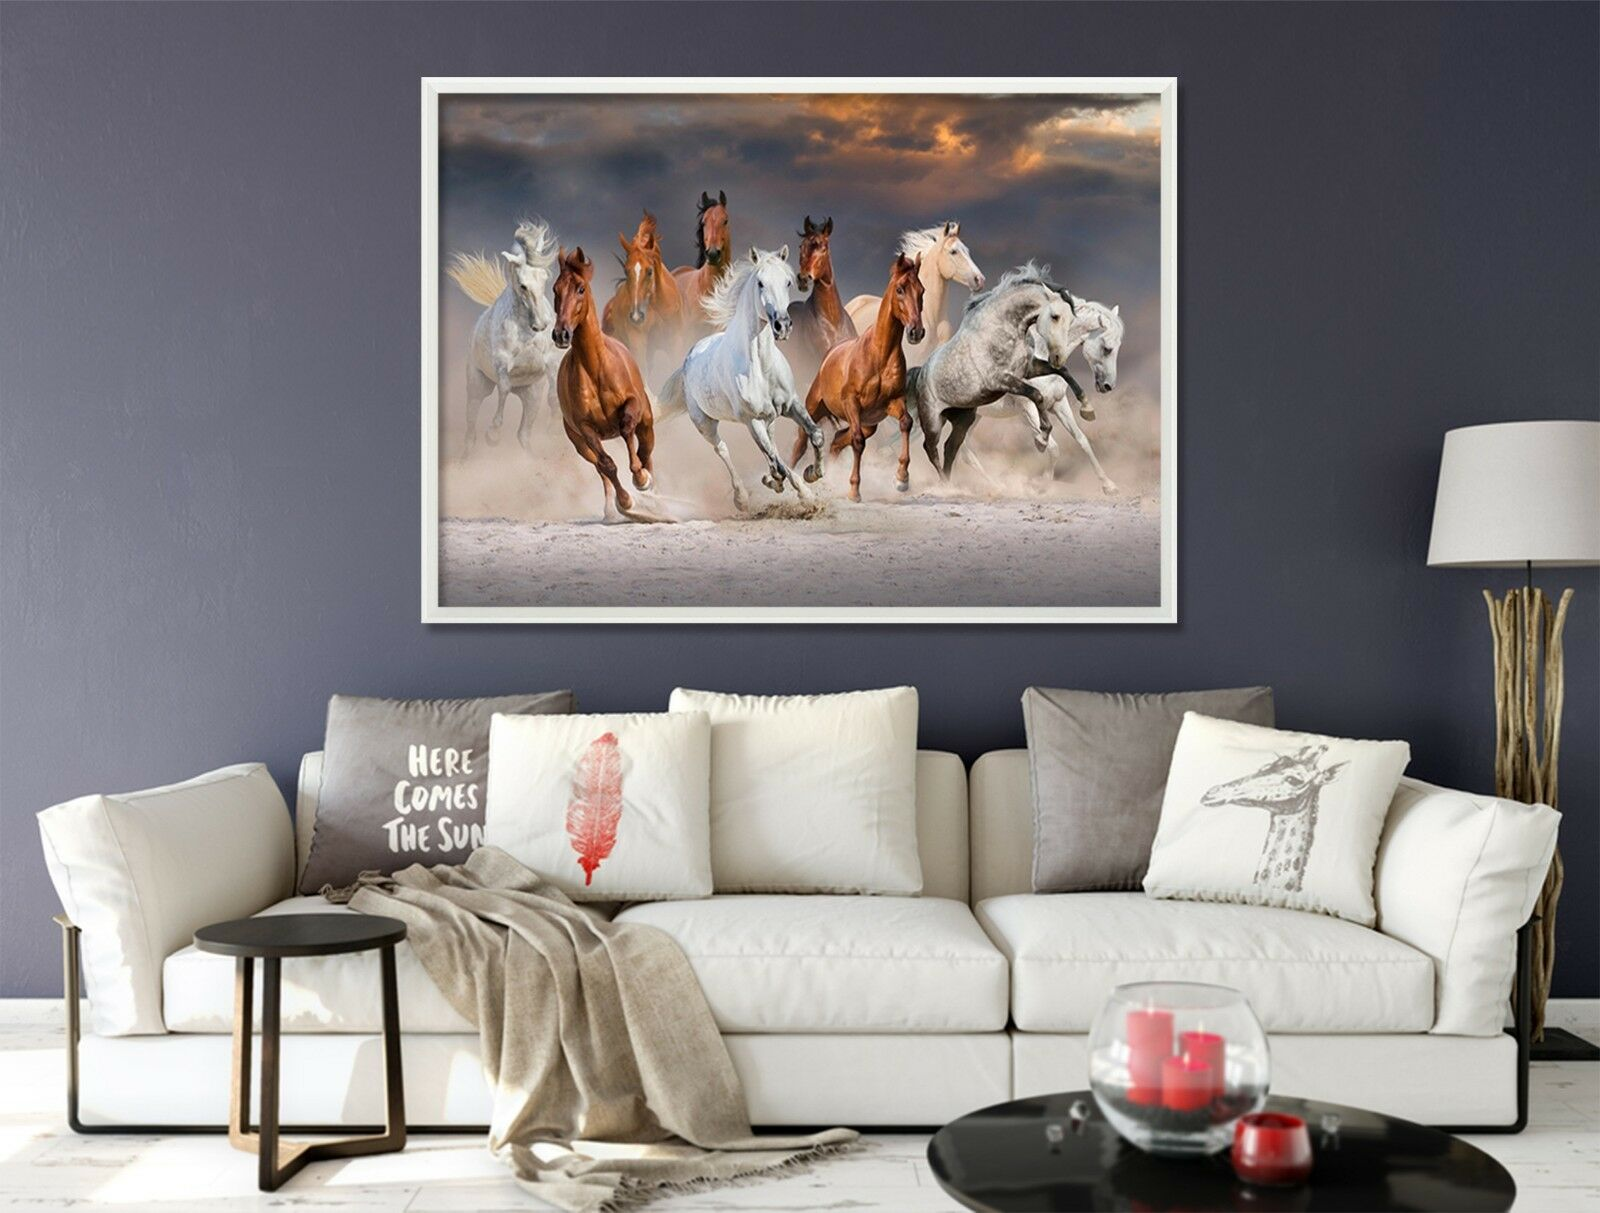 3D Land Horse 674 Fake Framed Poster Home Decor Print Painting Unique Art Summer